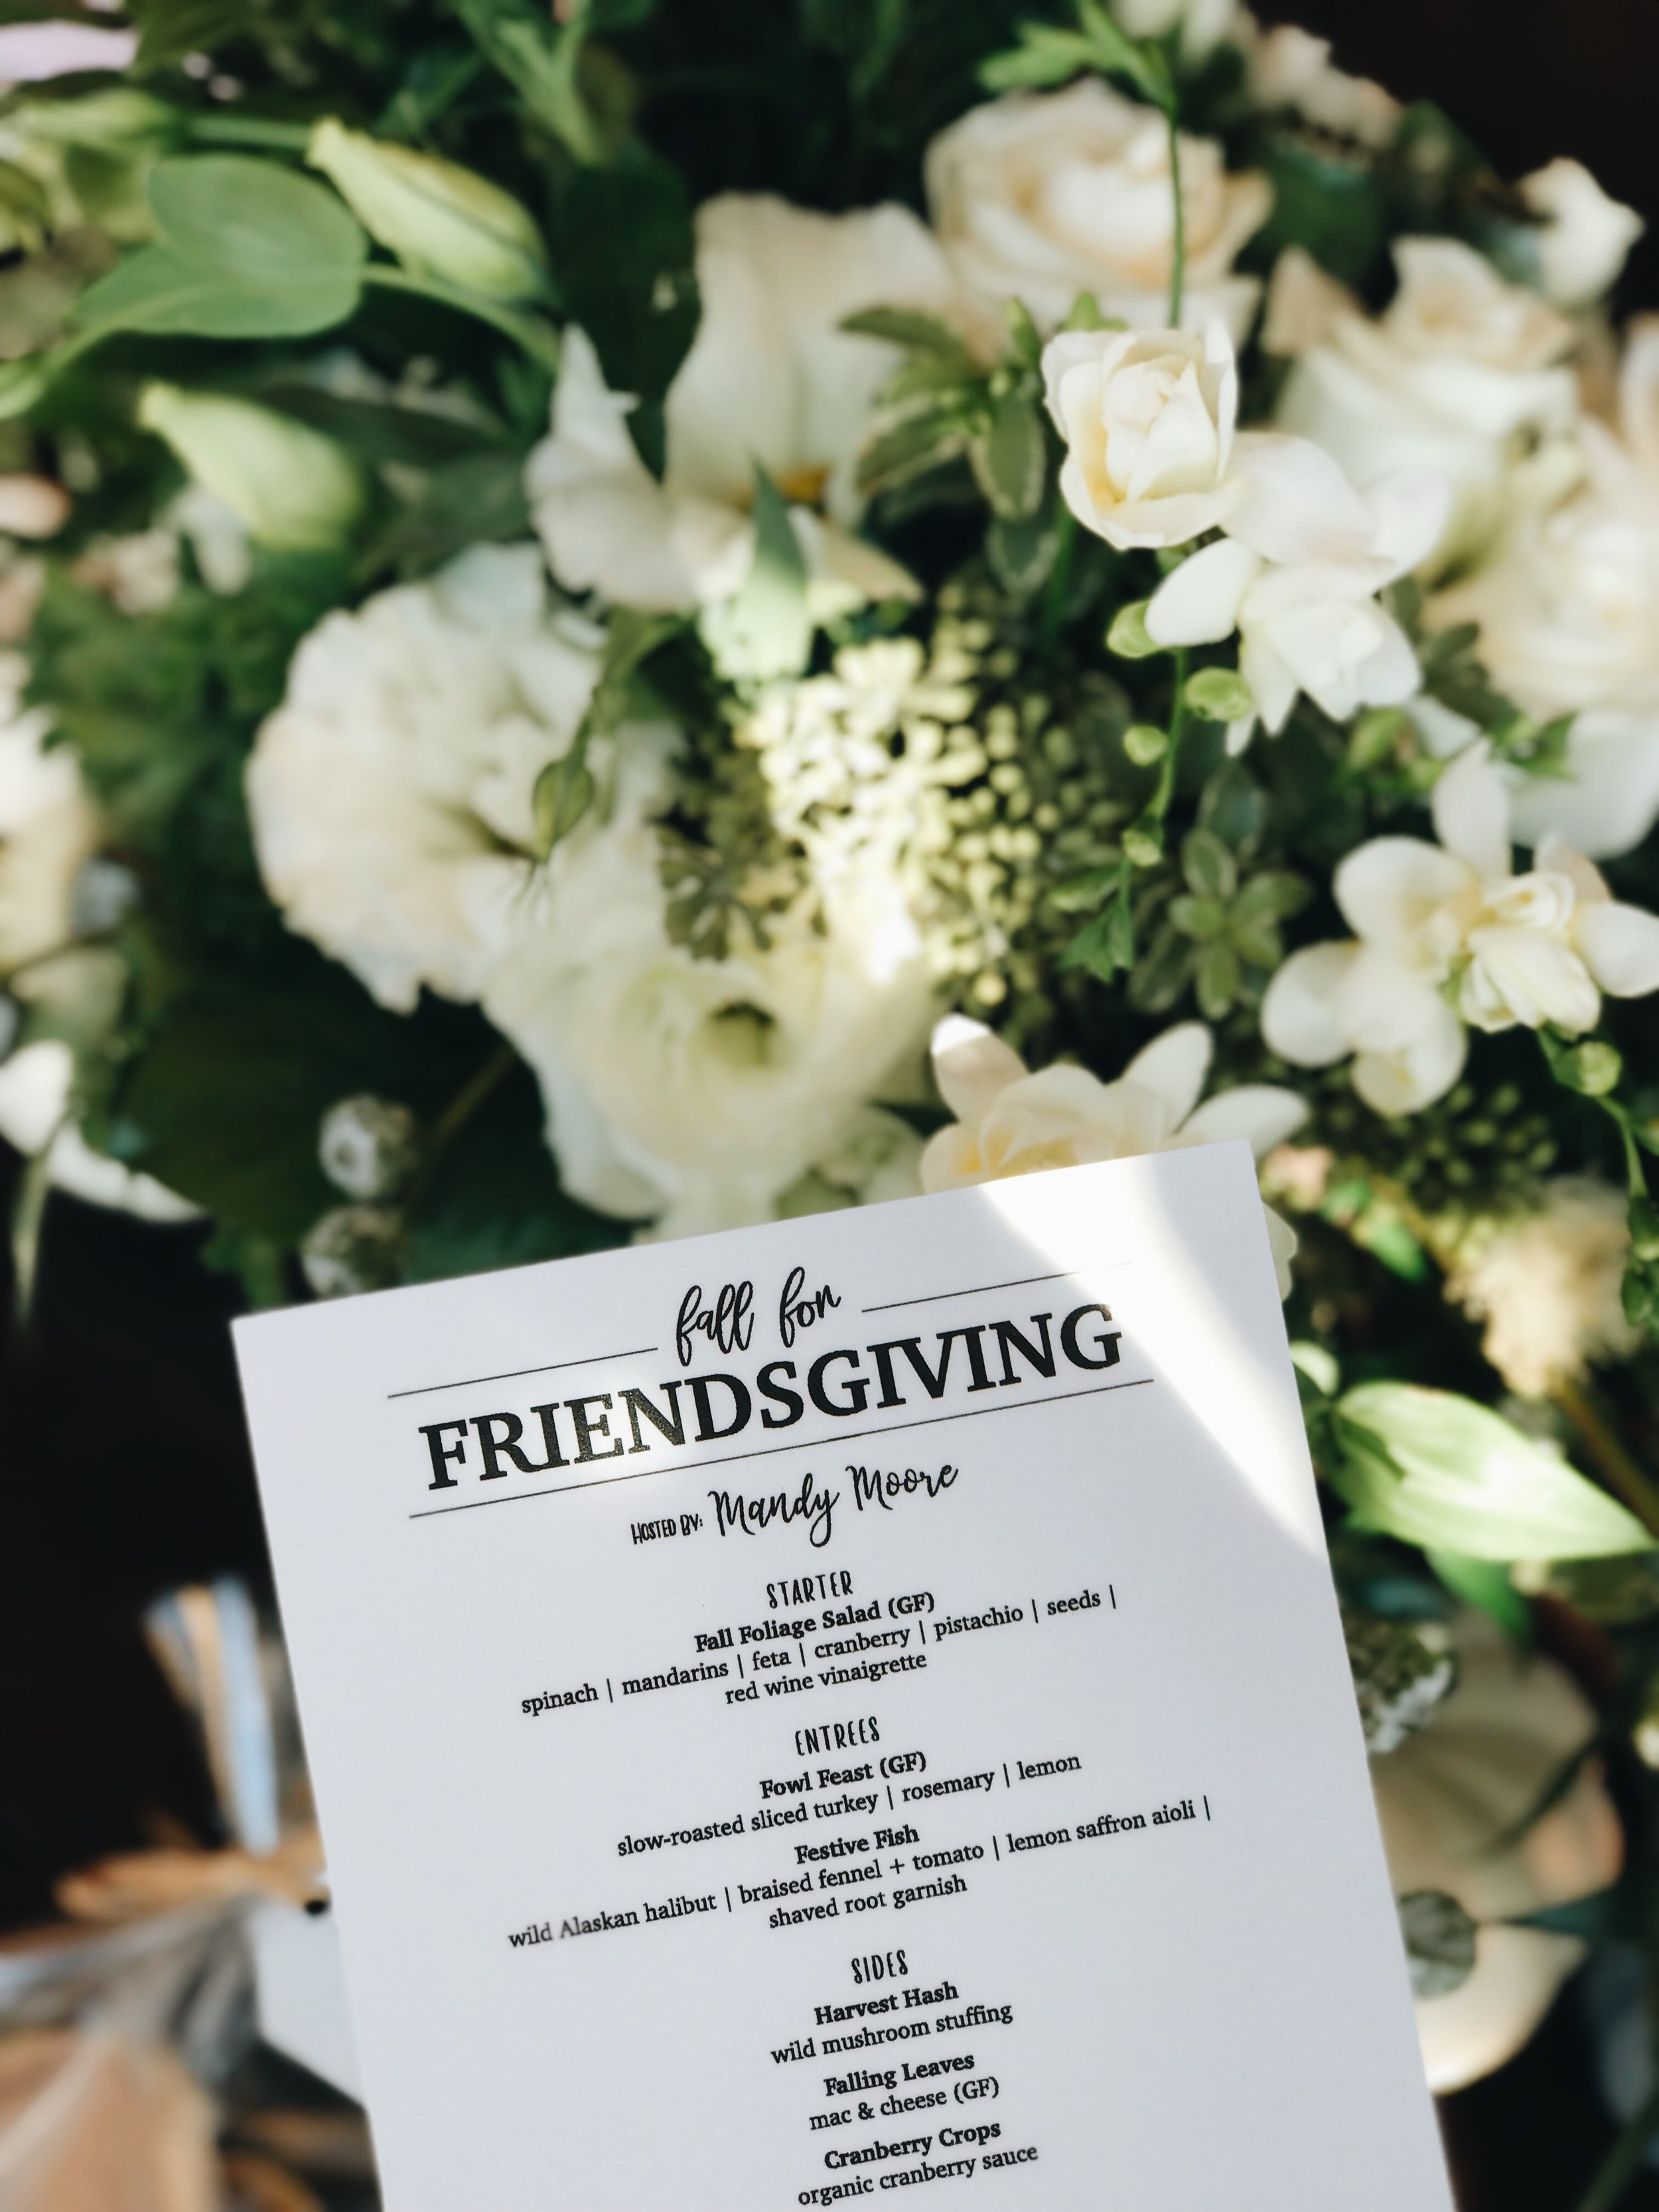 Friendsgiving with AMEX, Everyday Pursuit Ashley Torres